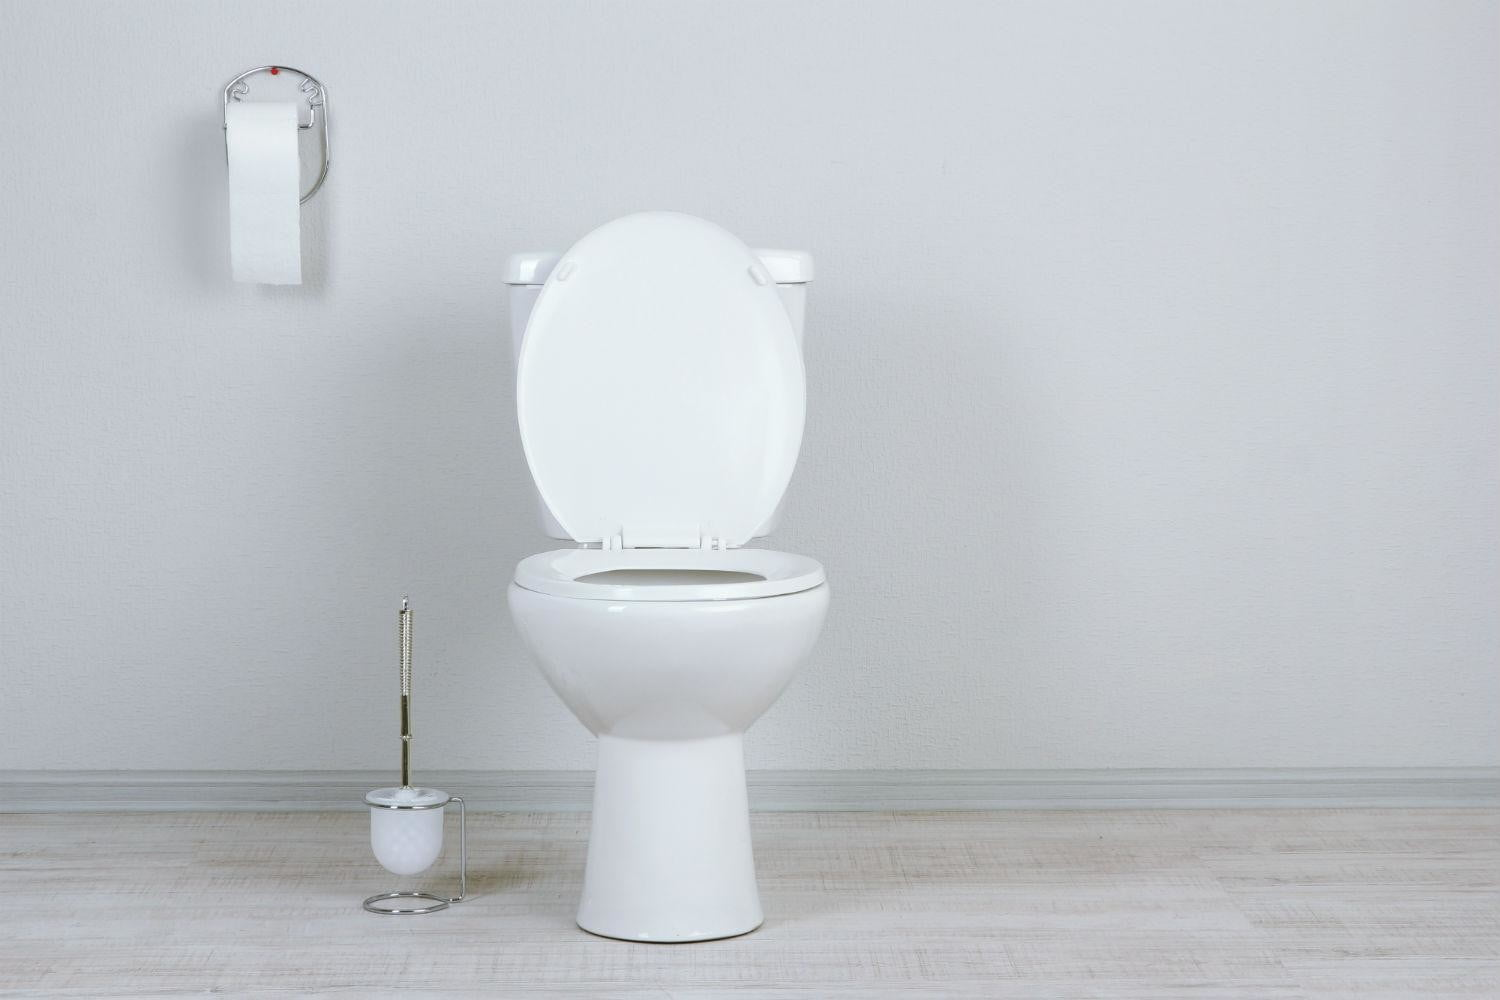 How to Unclog a Toilet | Digital Trends